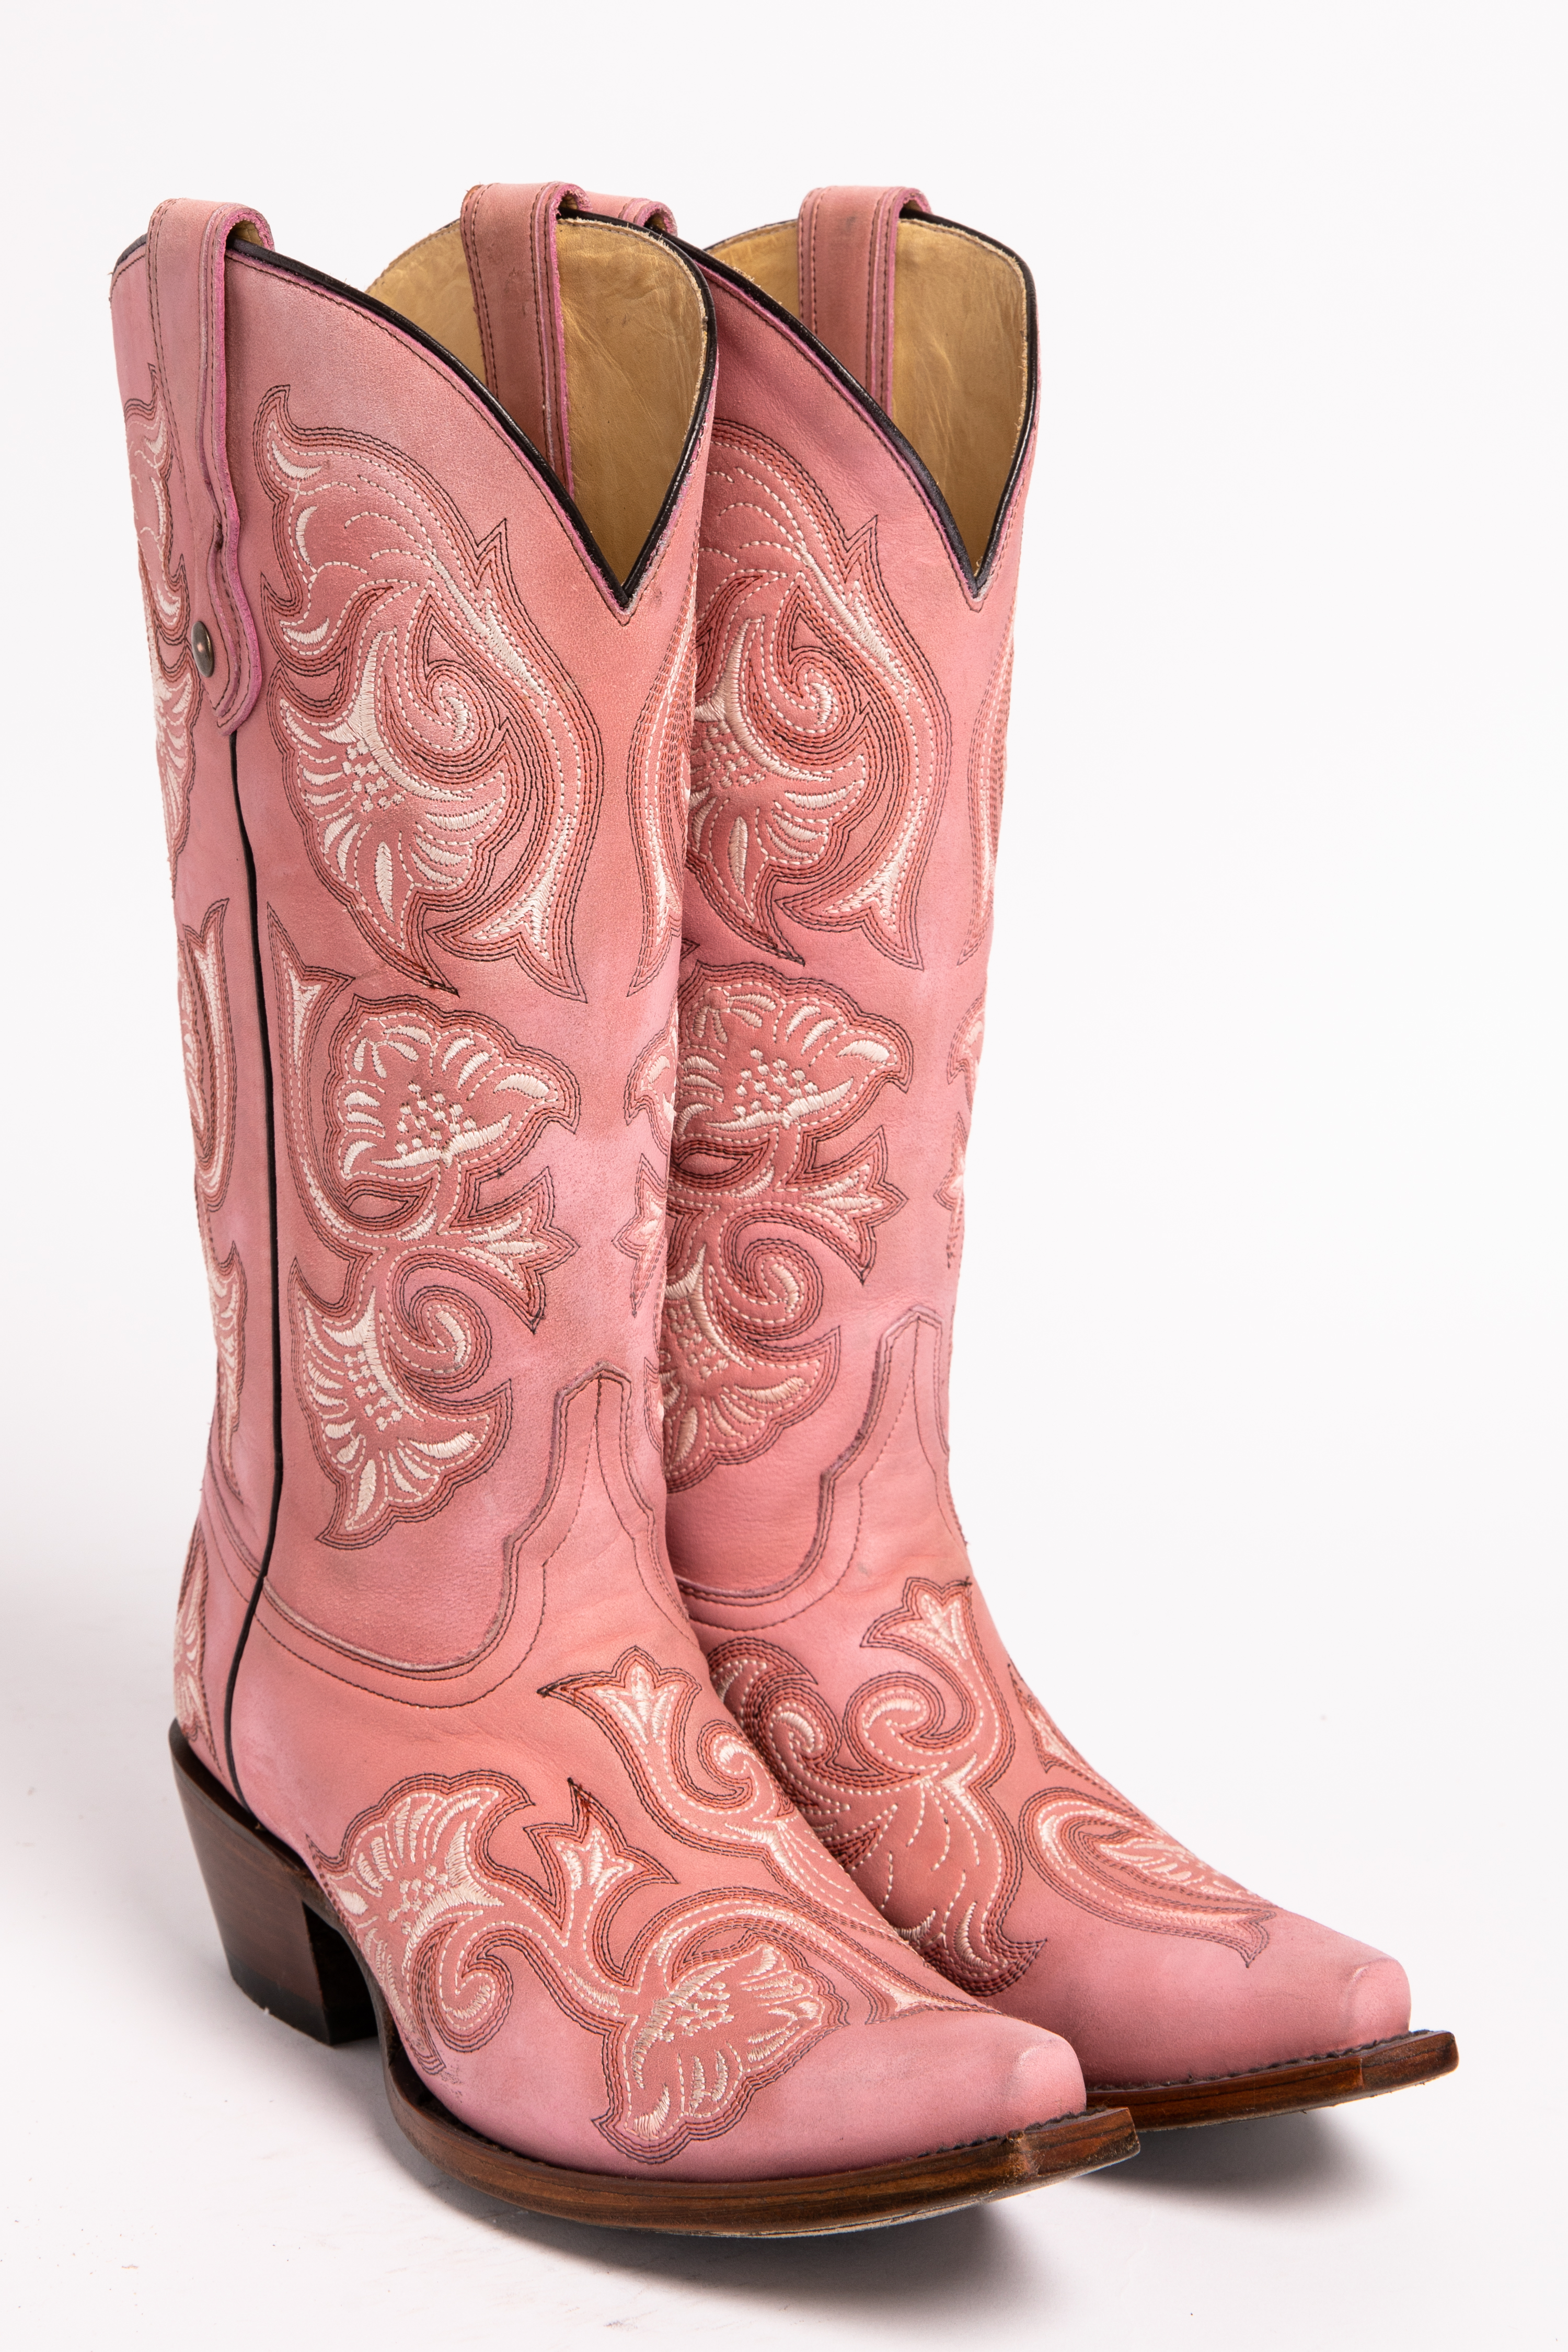 Corral Floral Embroidered Pink Cowgirl Boots Snip Toe